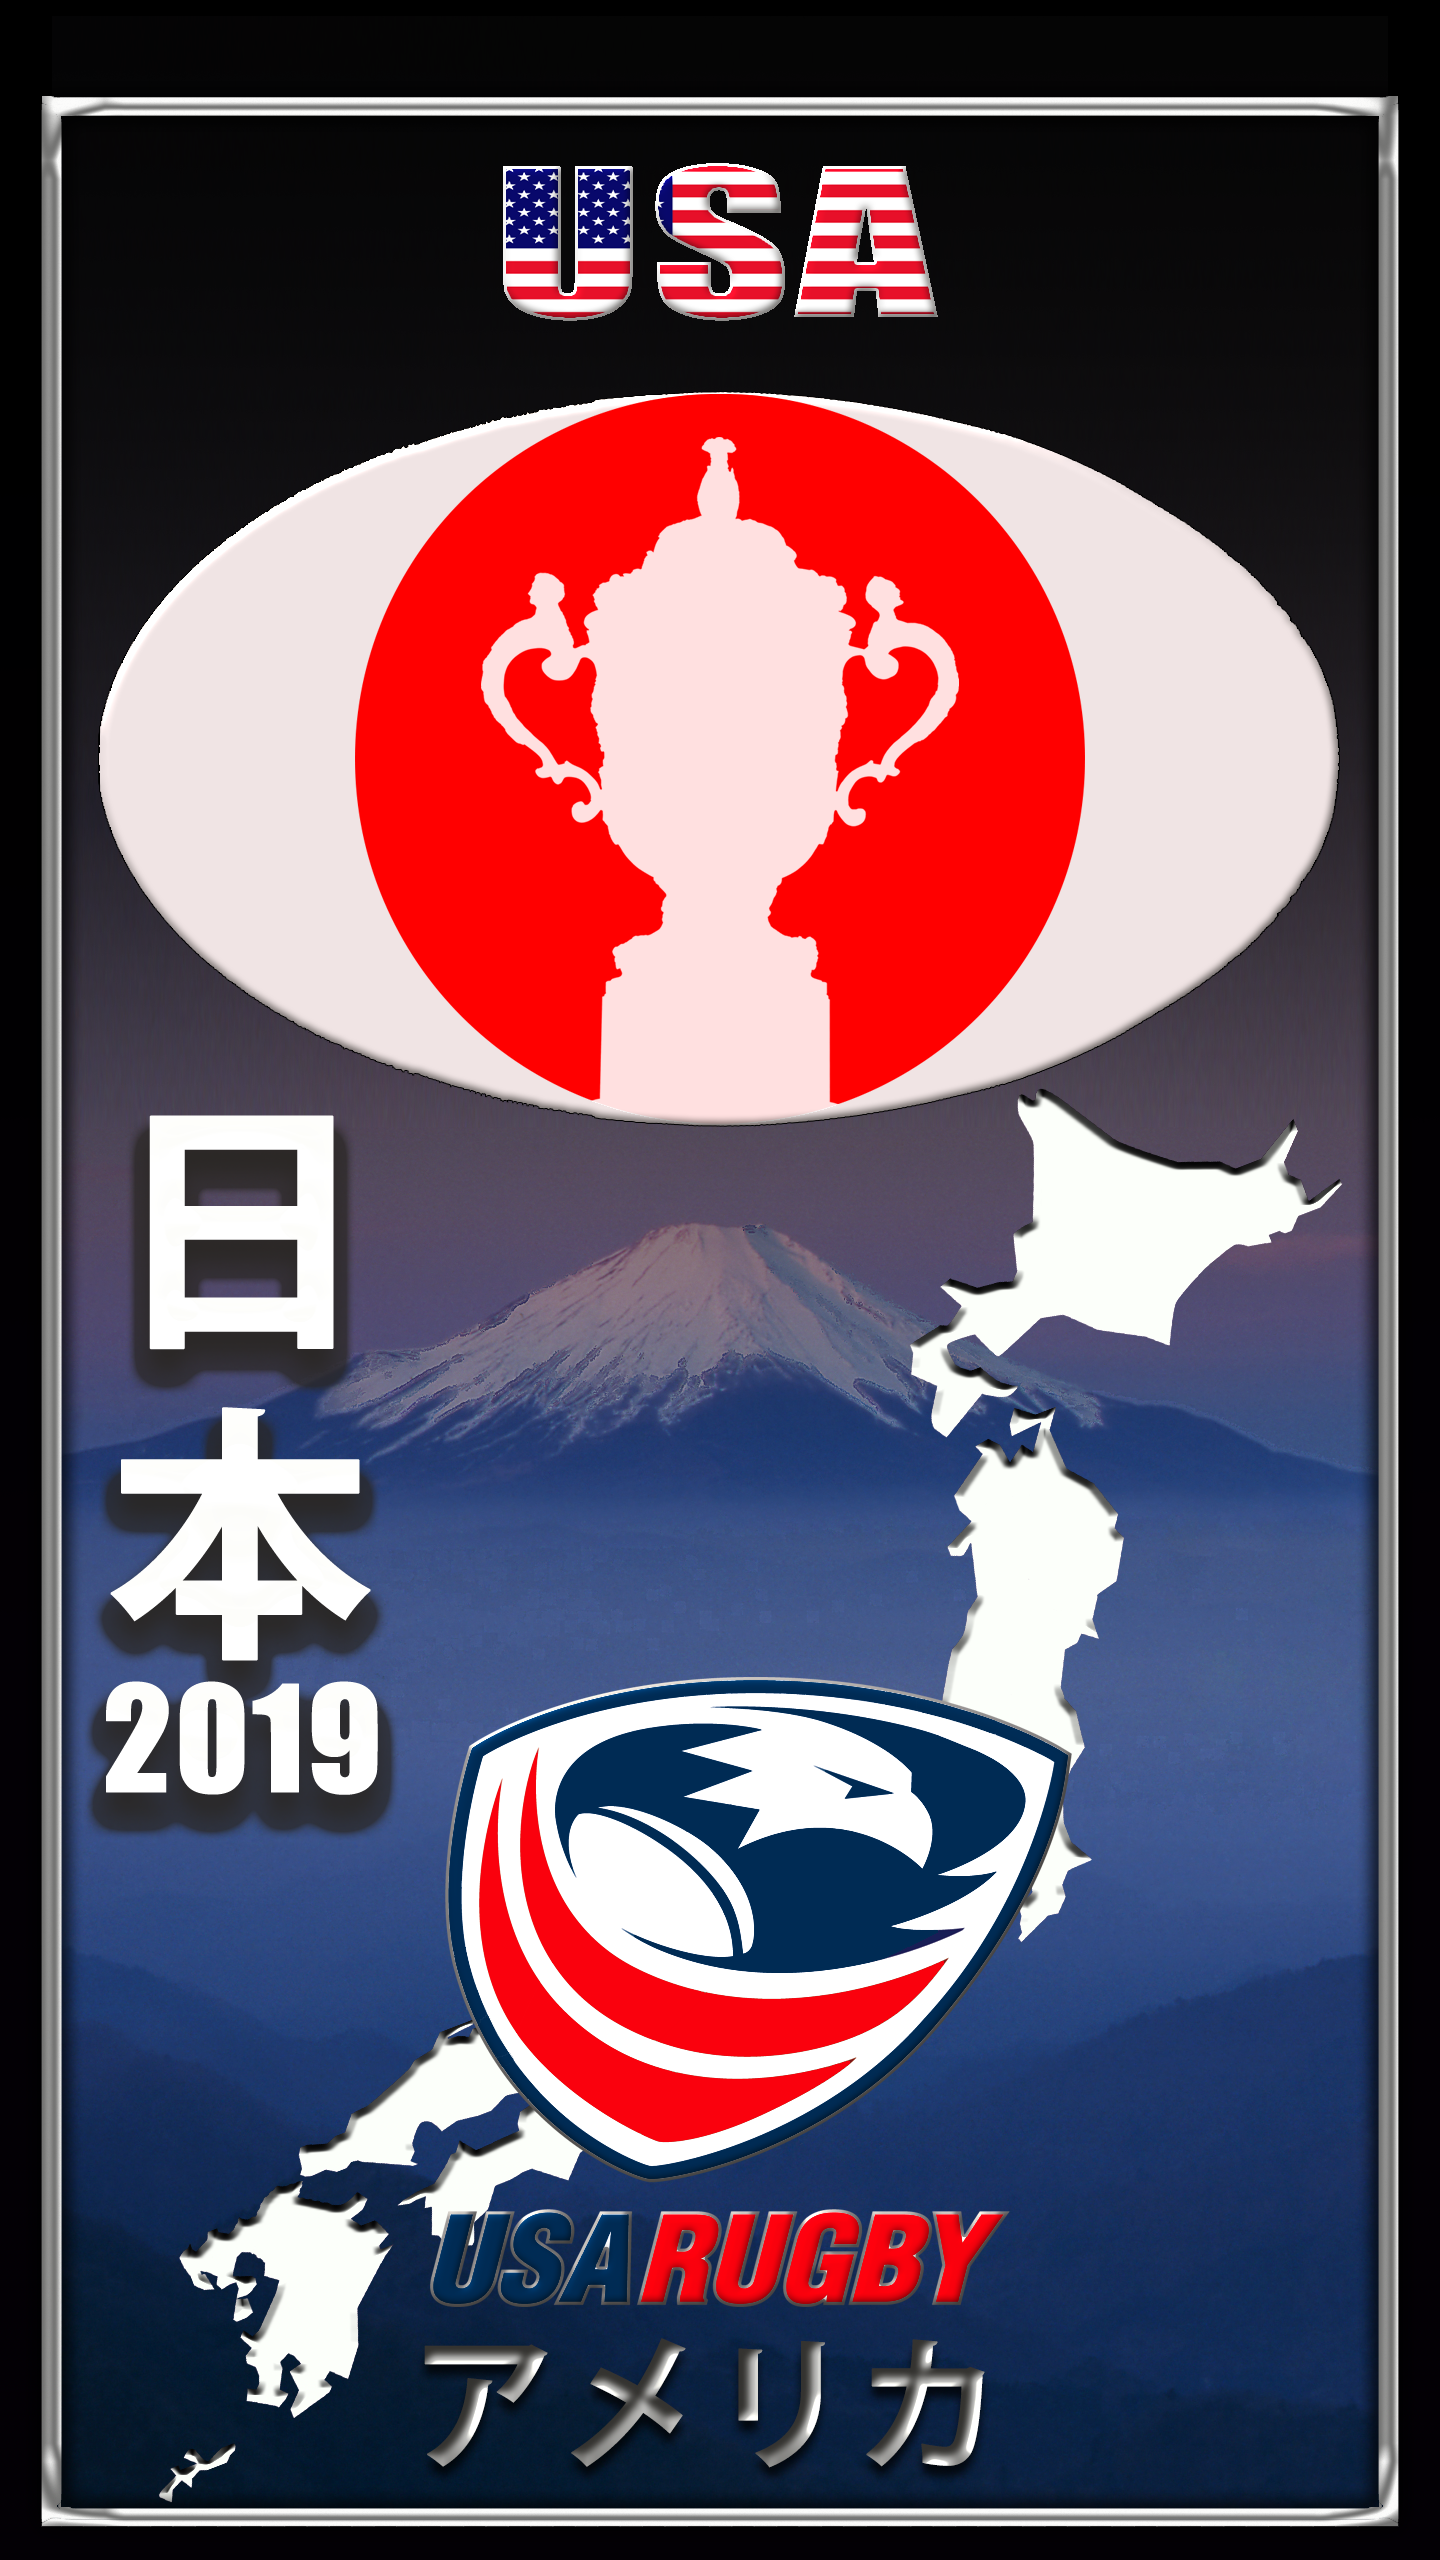 Usa Rugby Usa Rugby Rugby Union Rugby World Cup